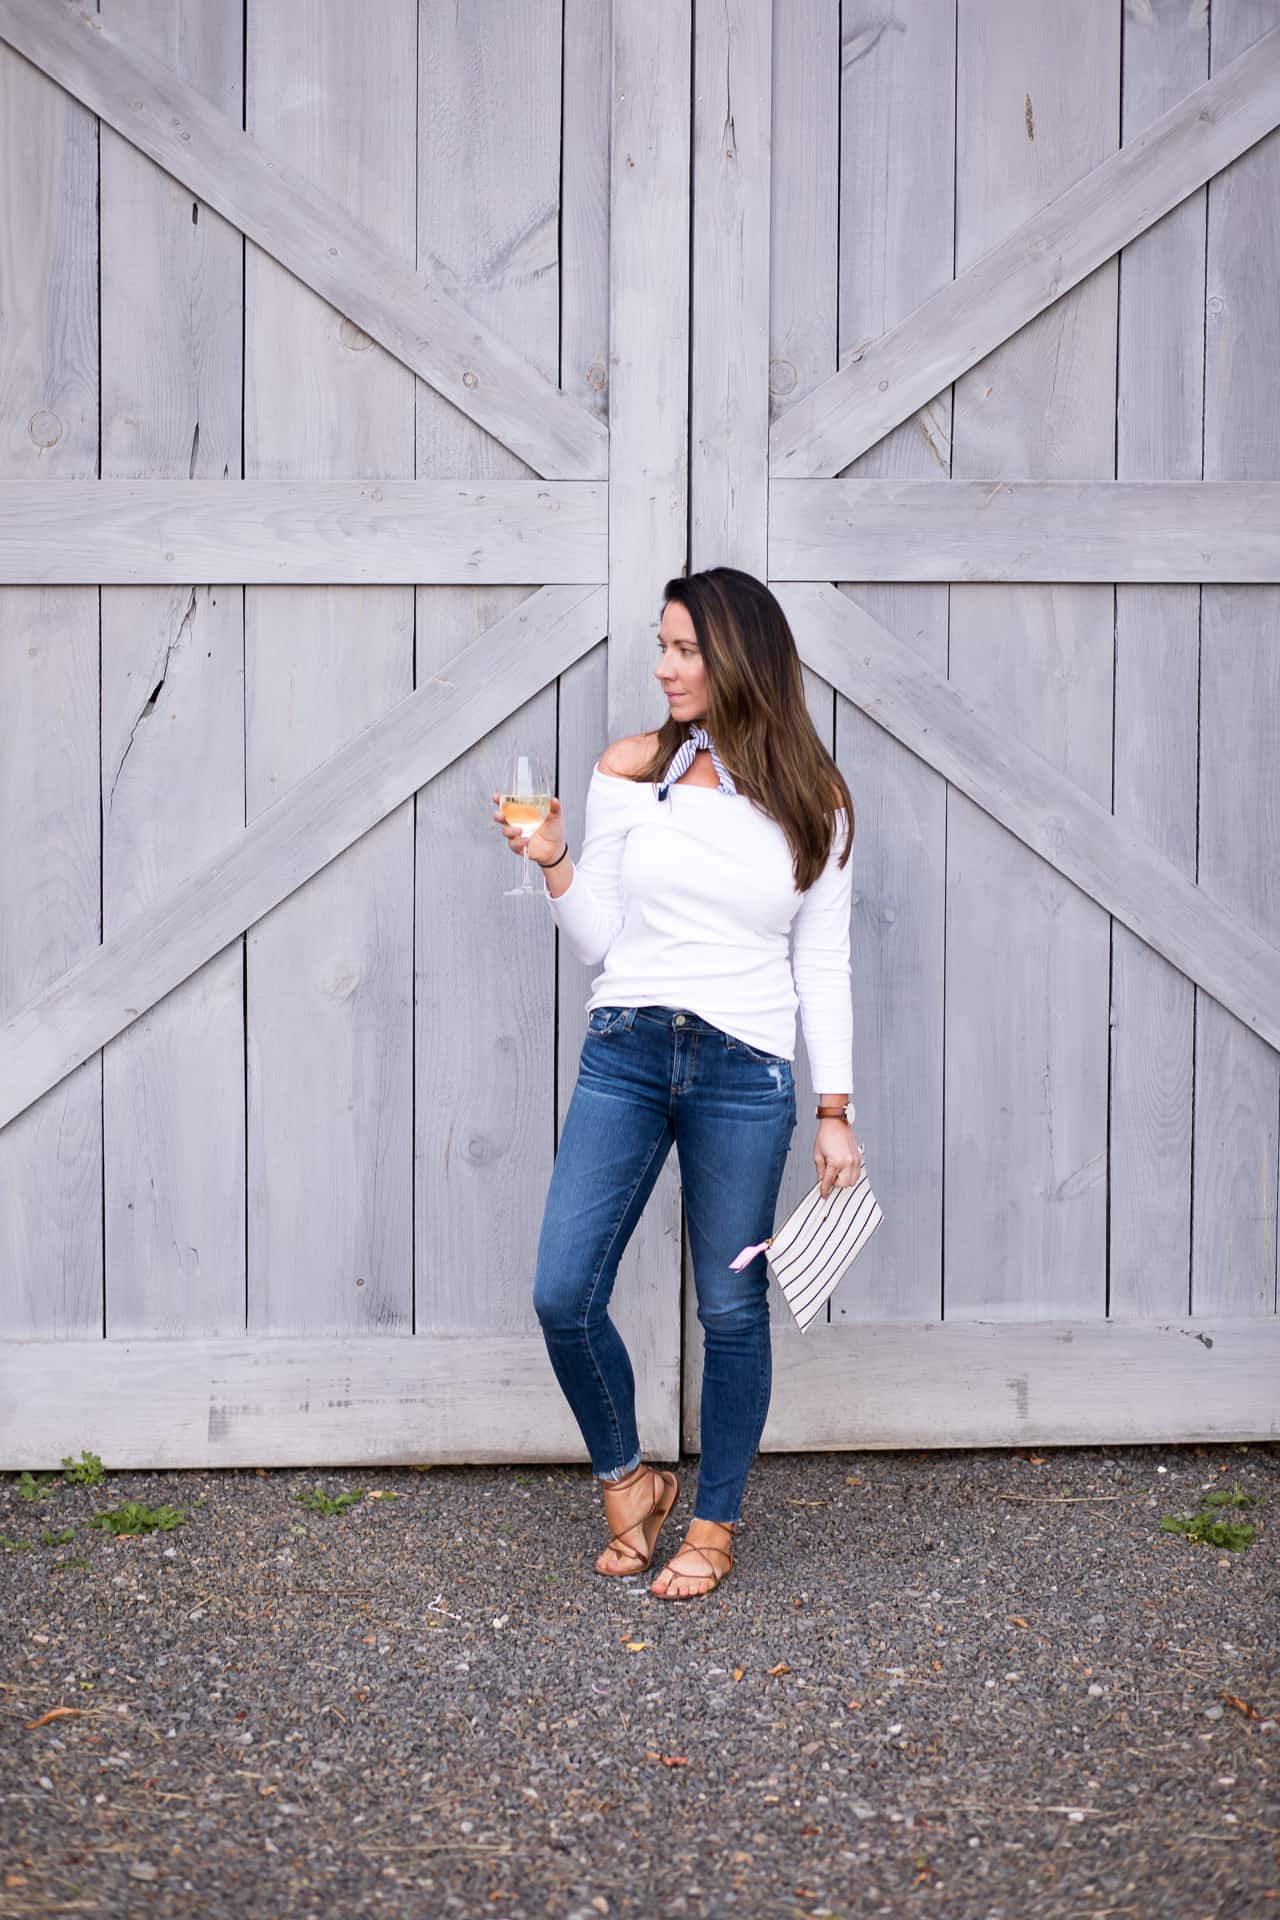 Off the Shoulder Tops, Wine, and a Farm